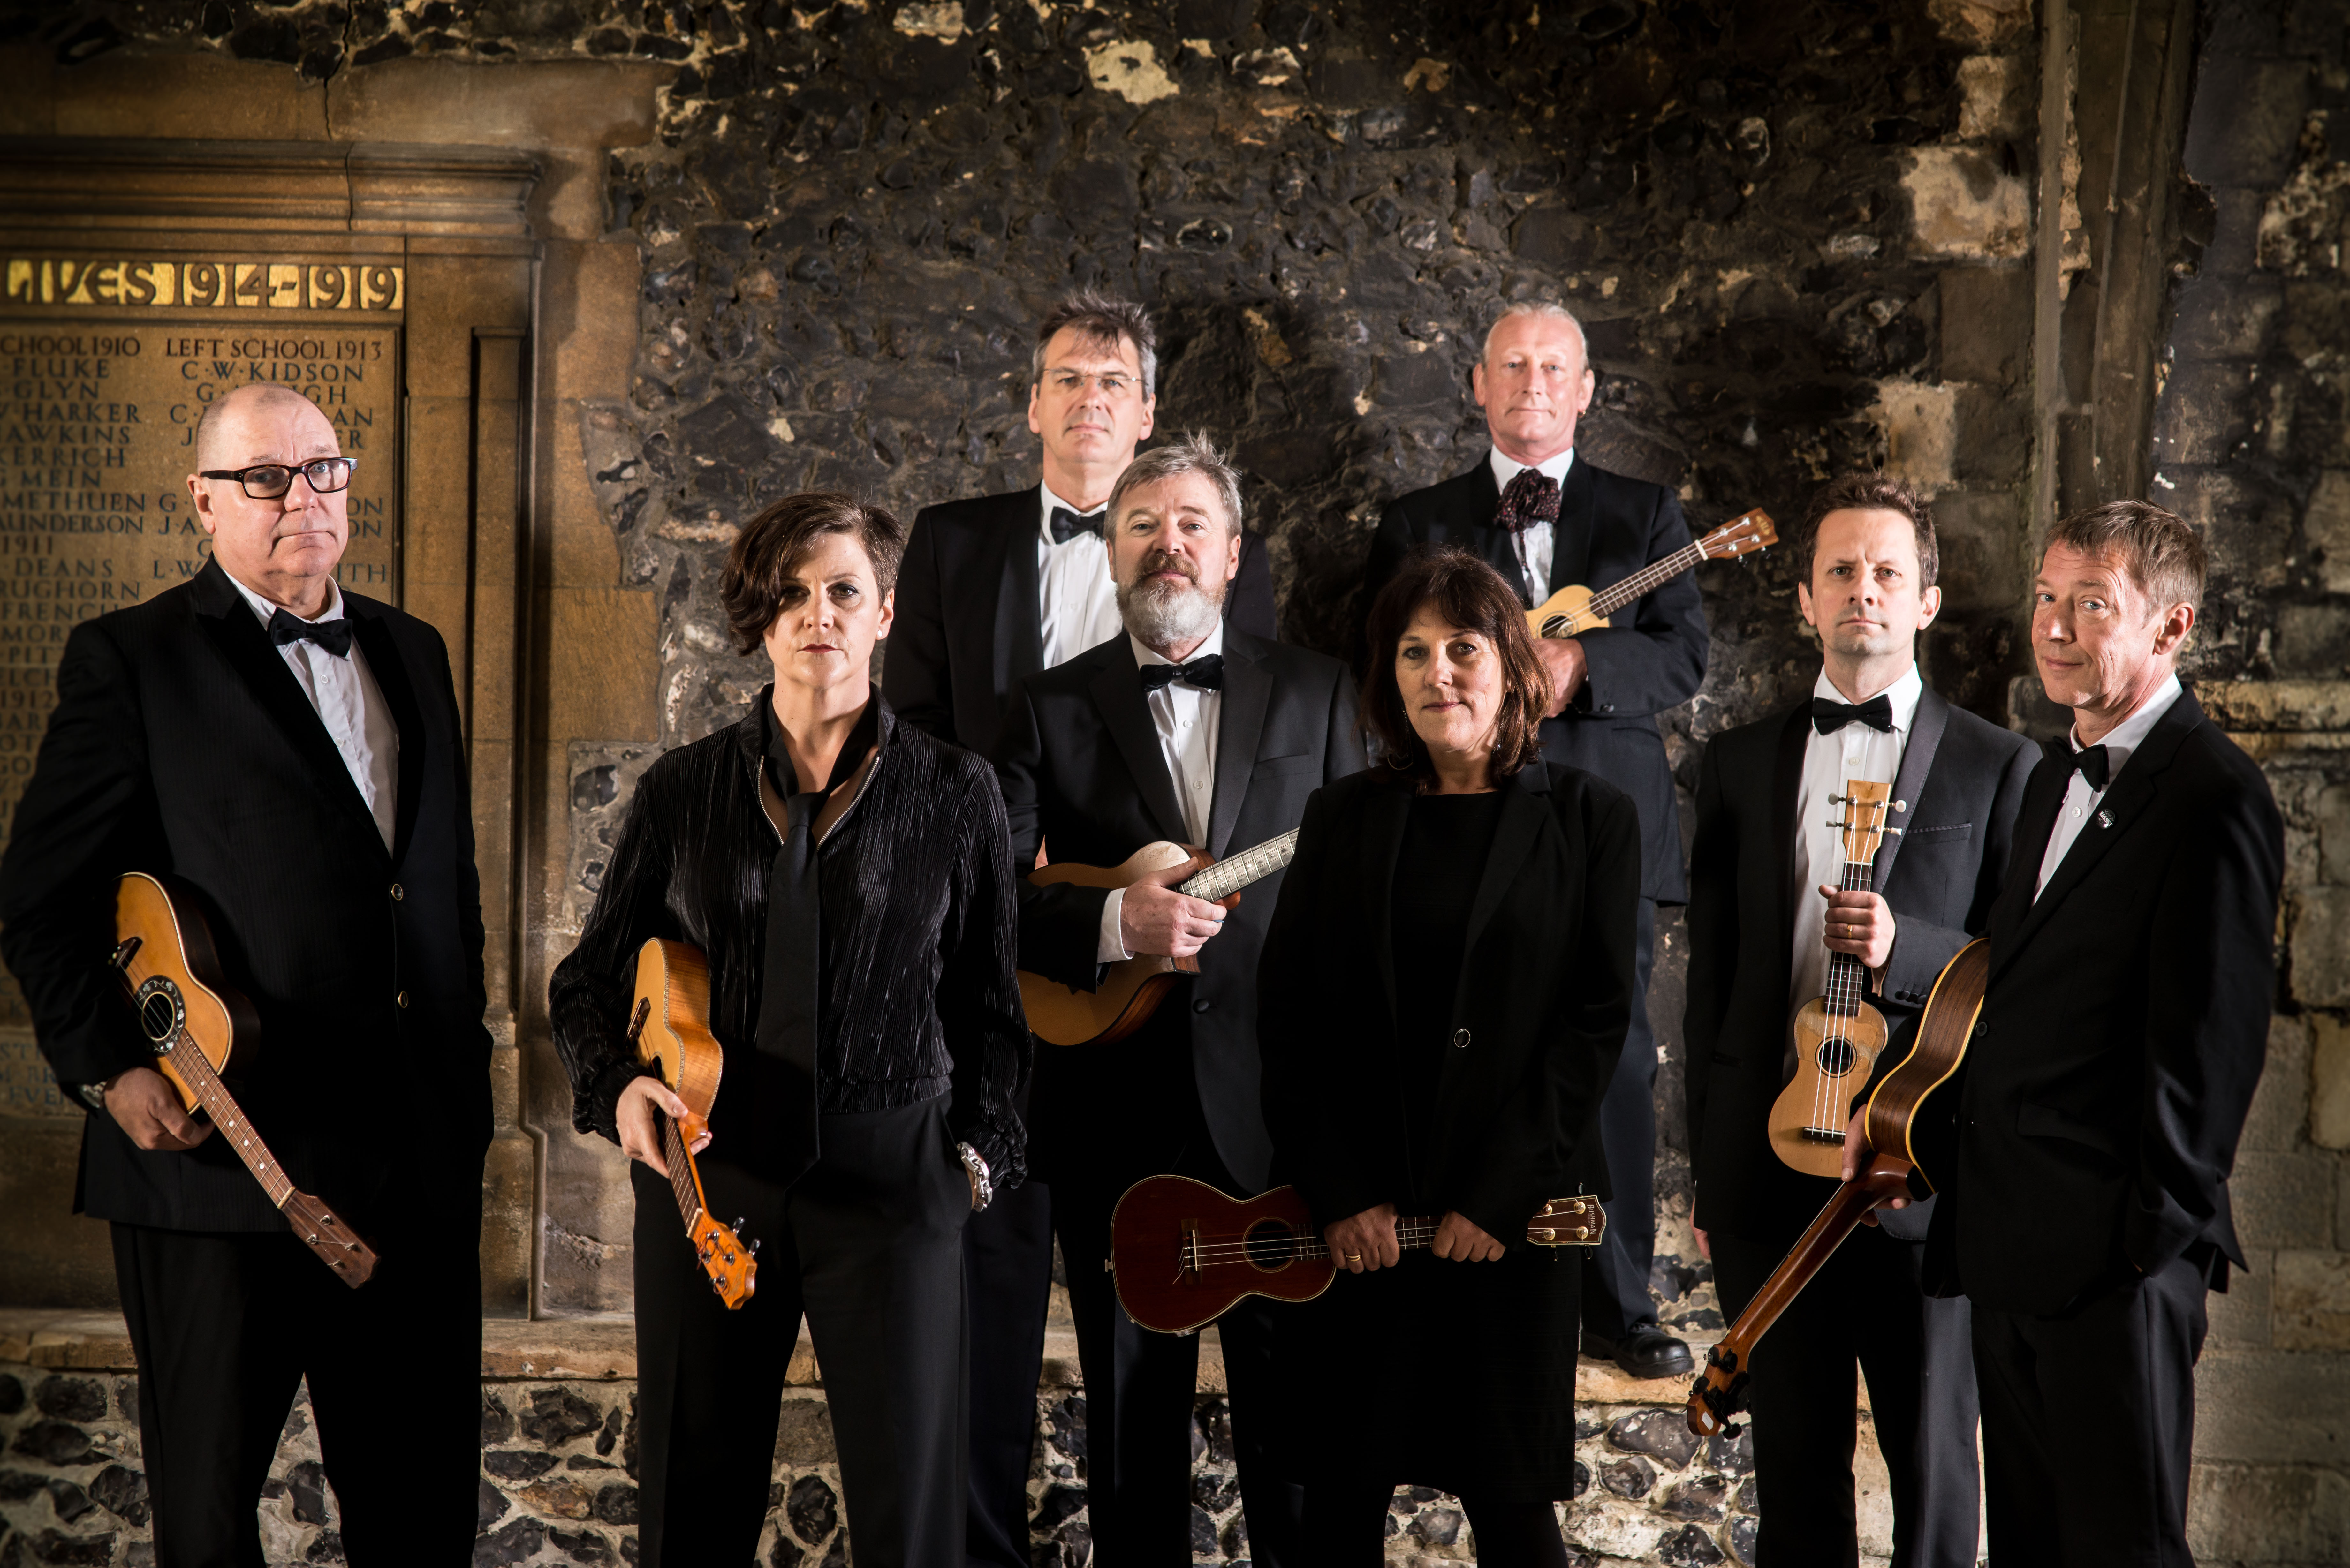 The Ukulele Orchestra of Great Britain am 02.09.2018 in der MUK in Lübeck